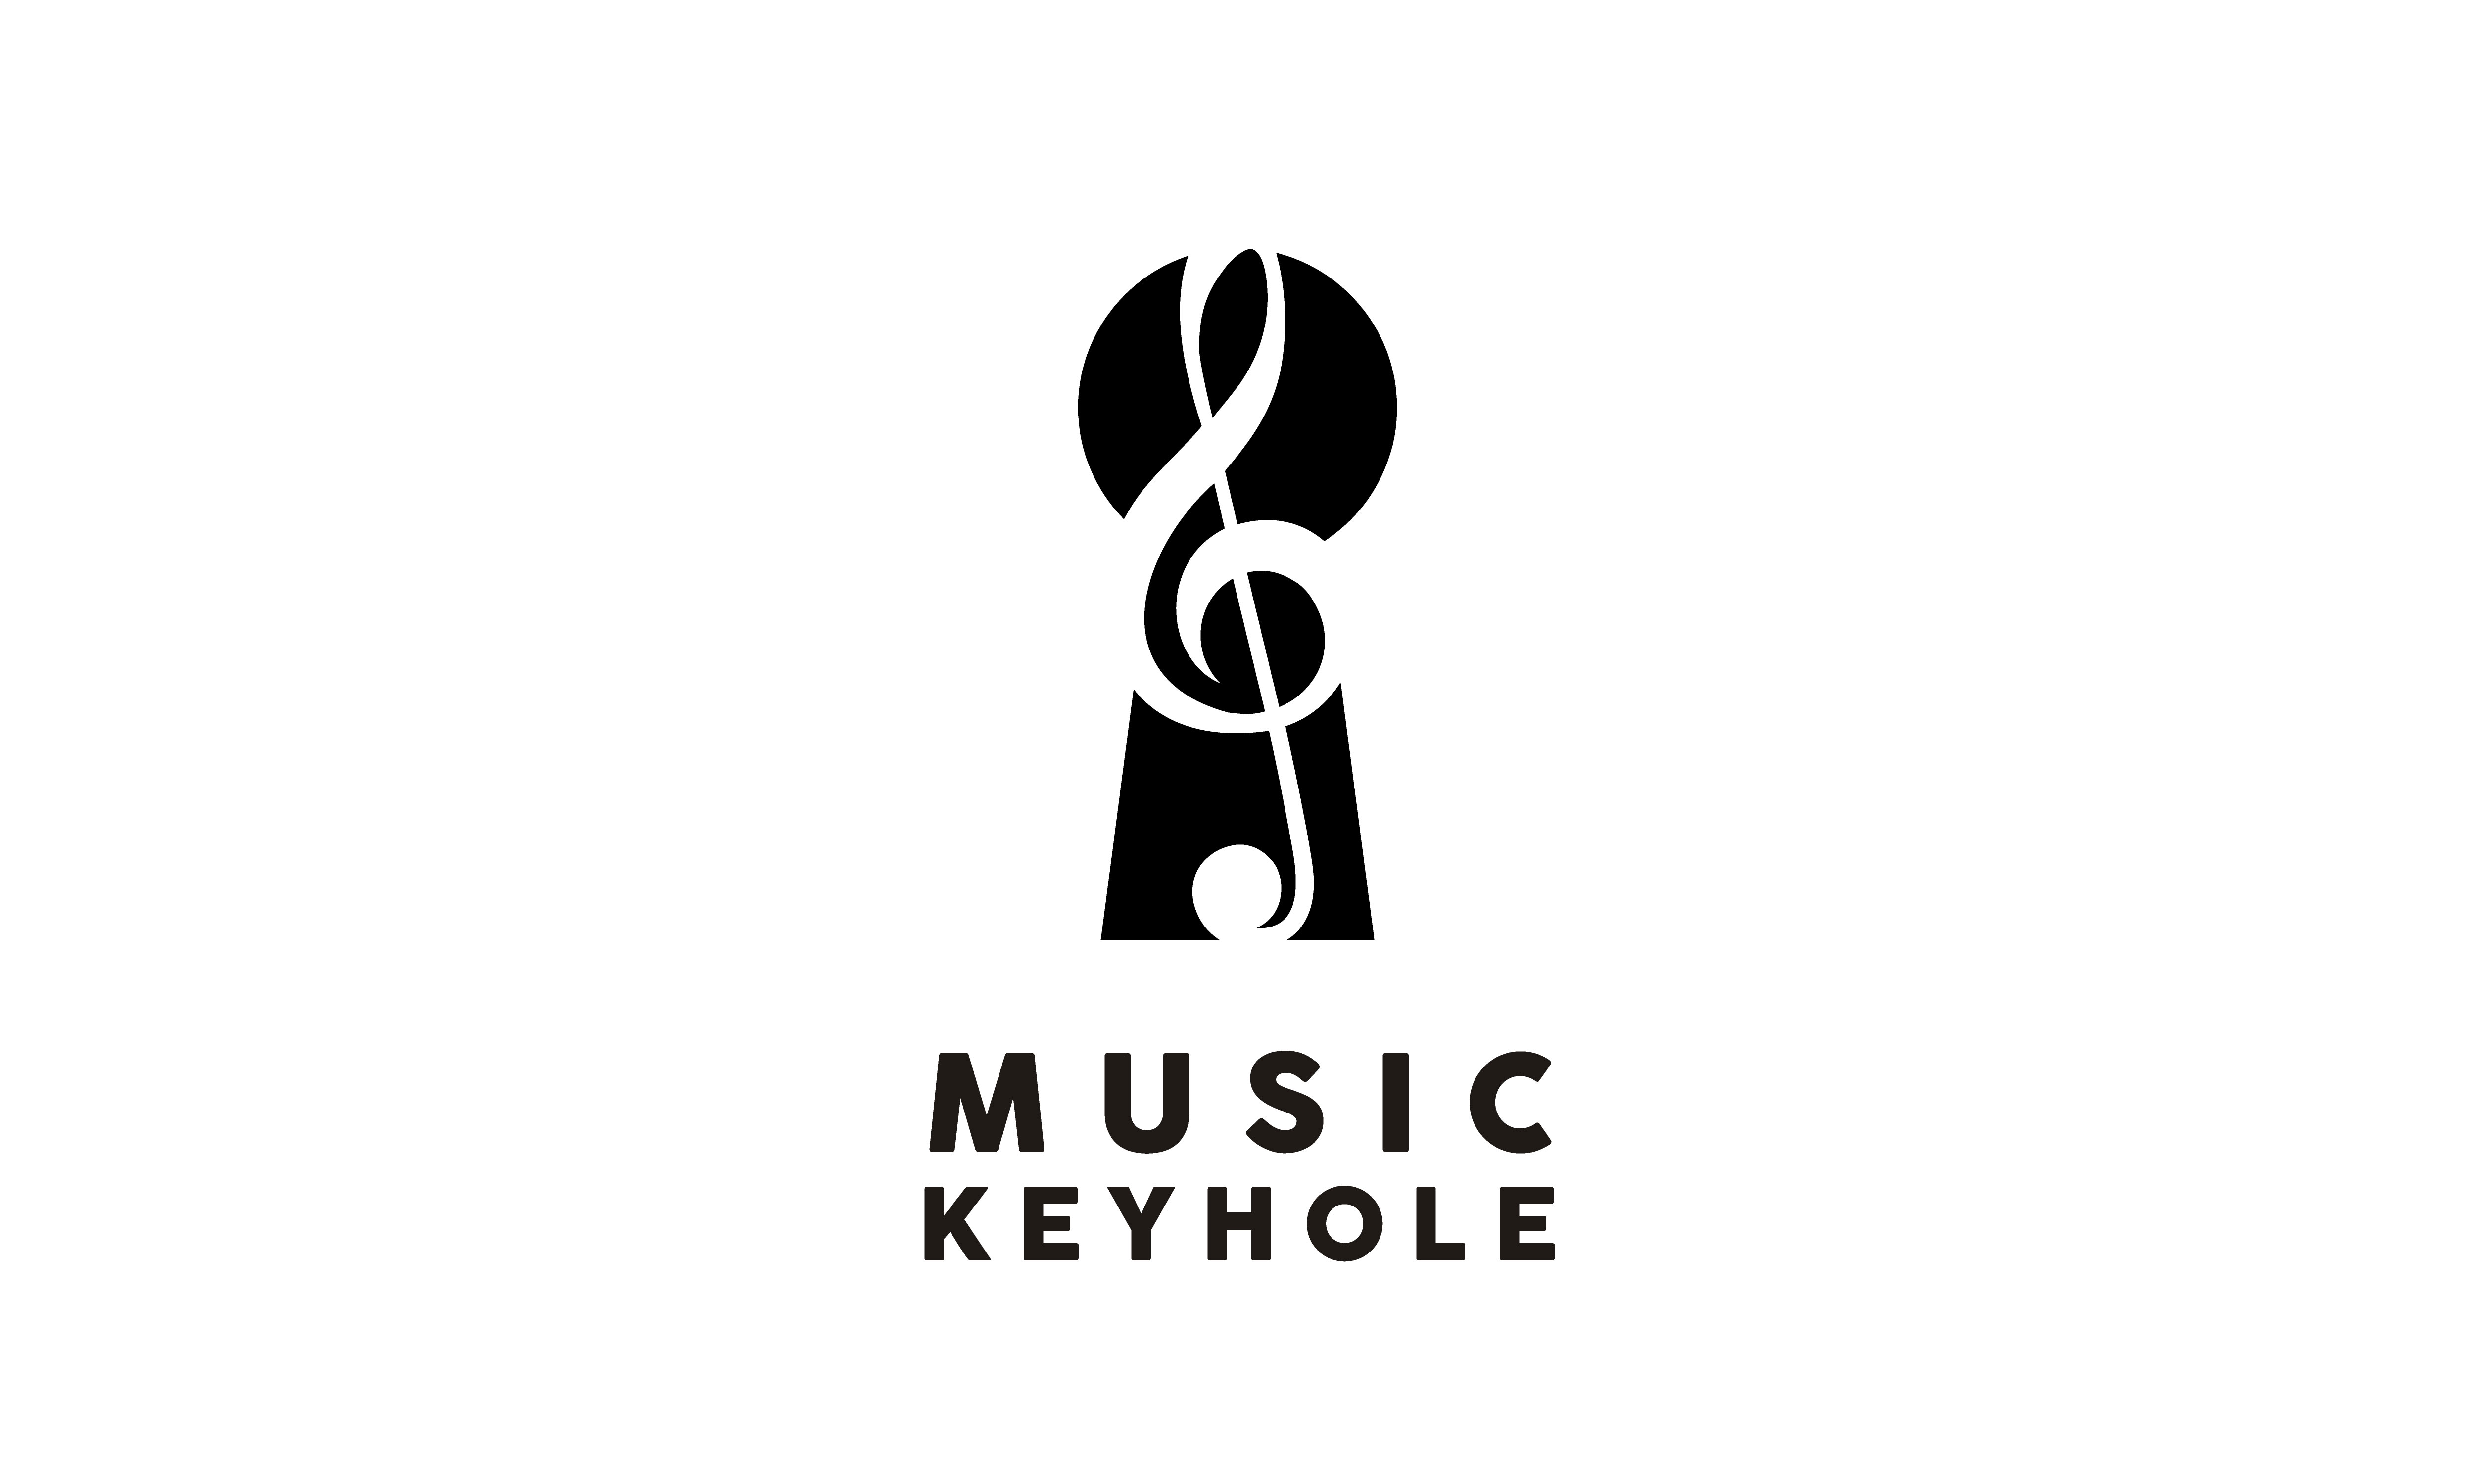 Music Note Treble Clef With Keyhole Logo Graphic By Enola99d